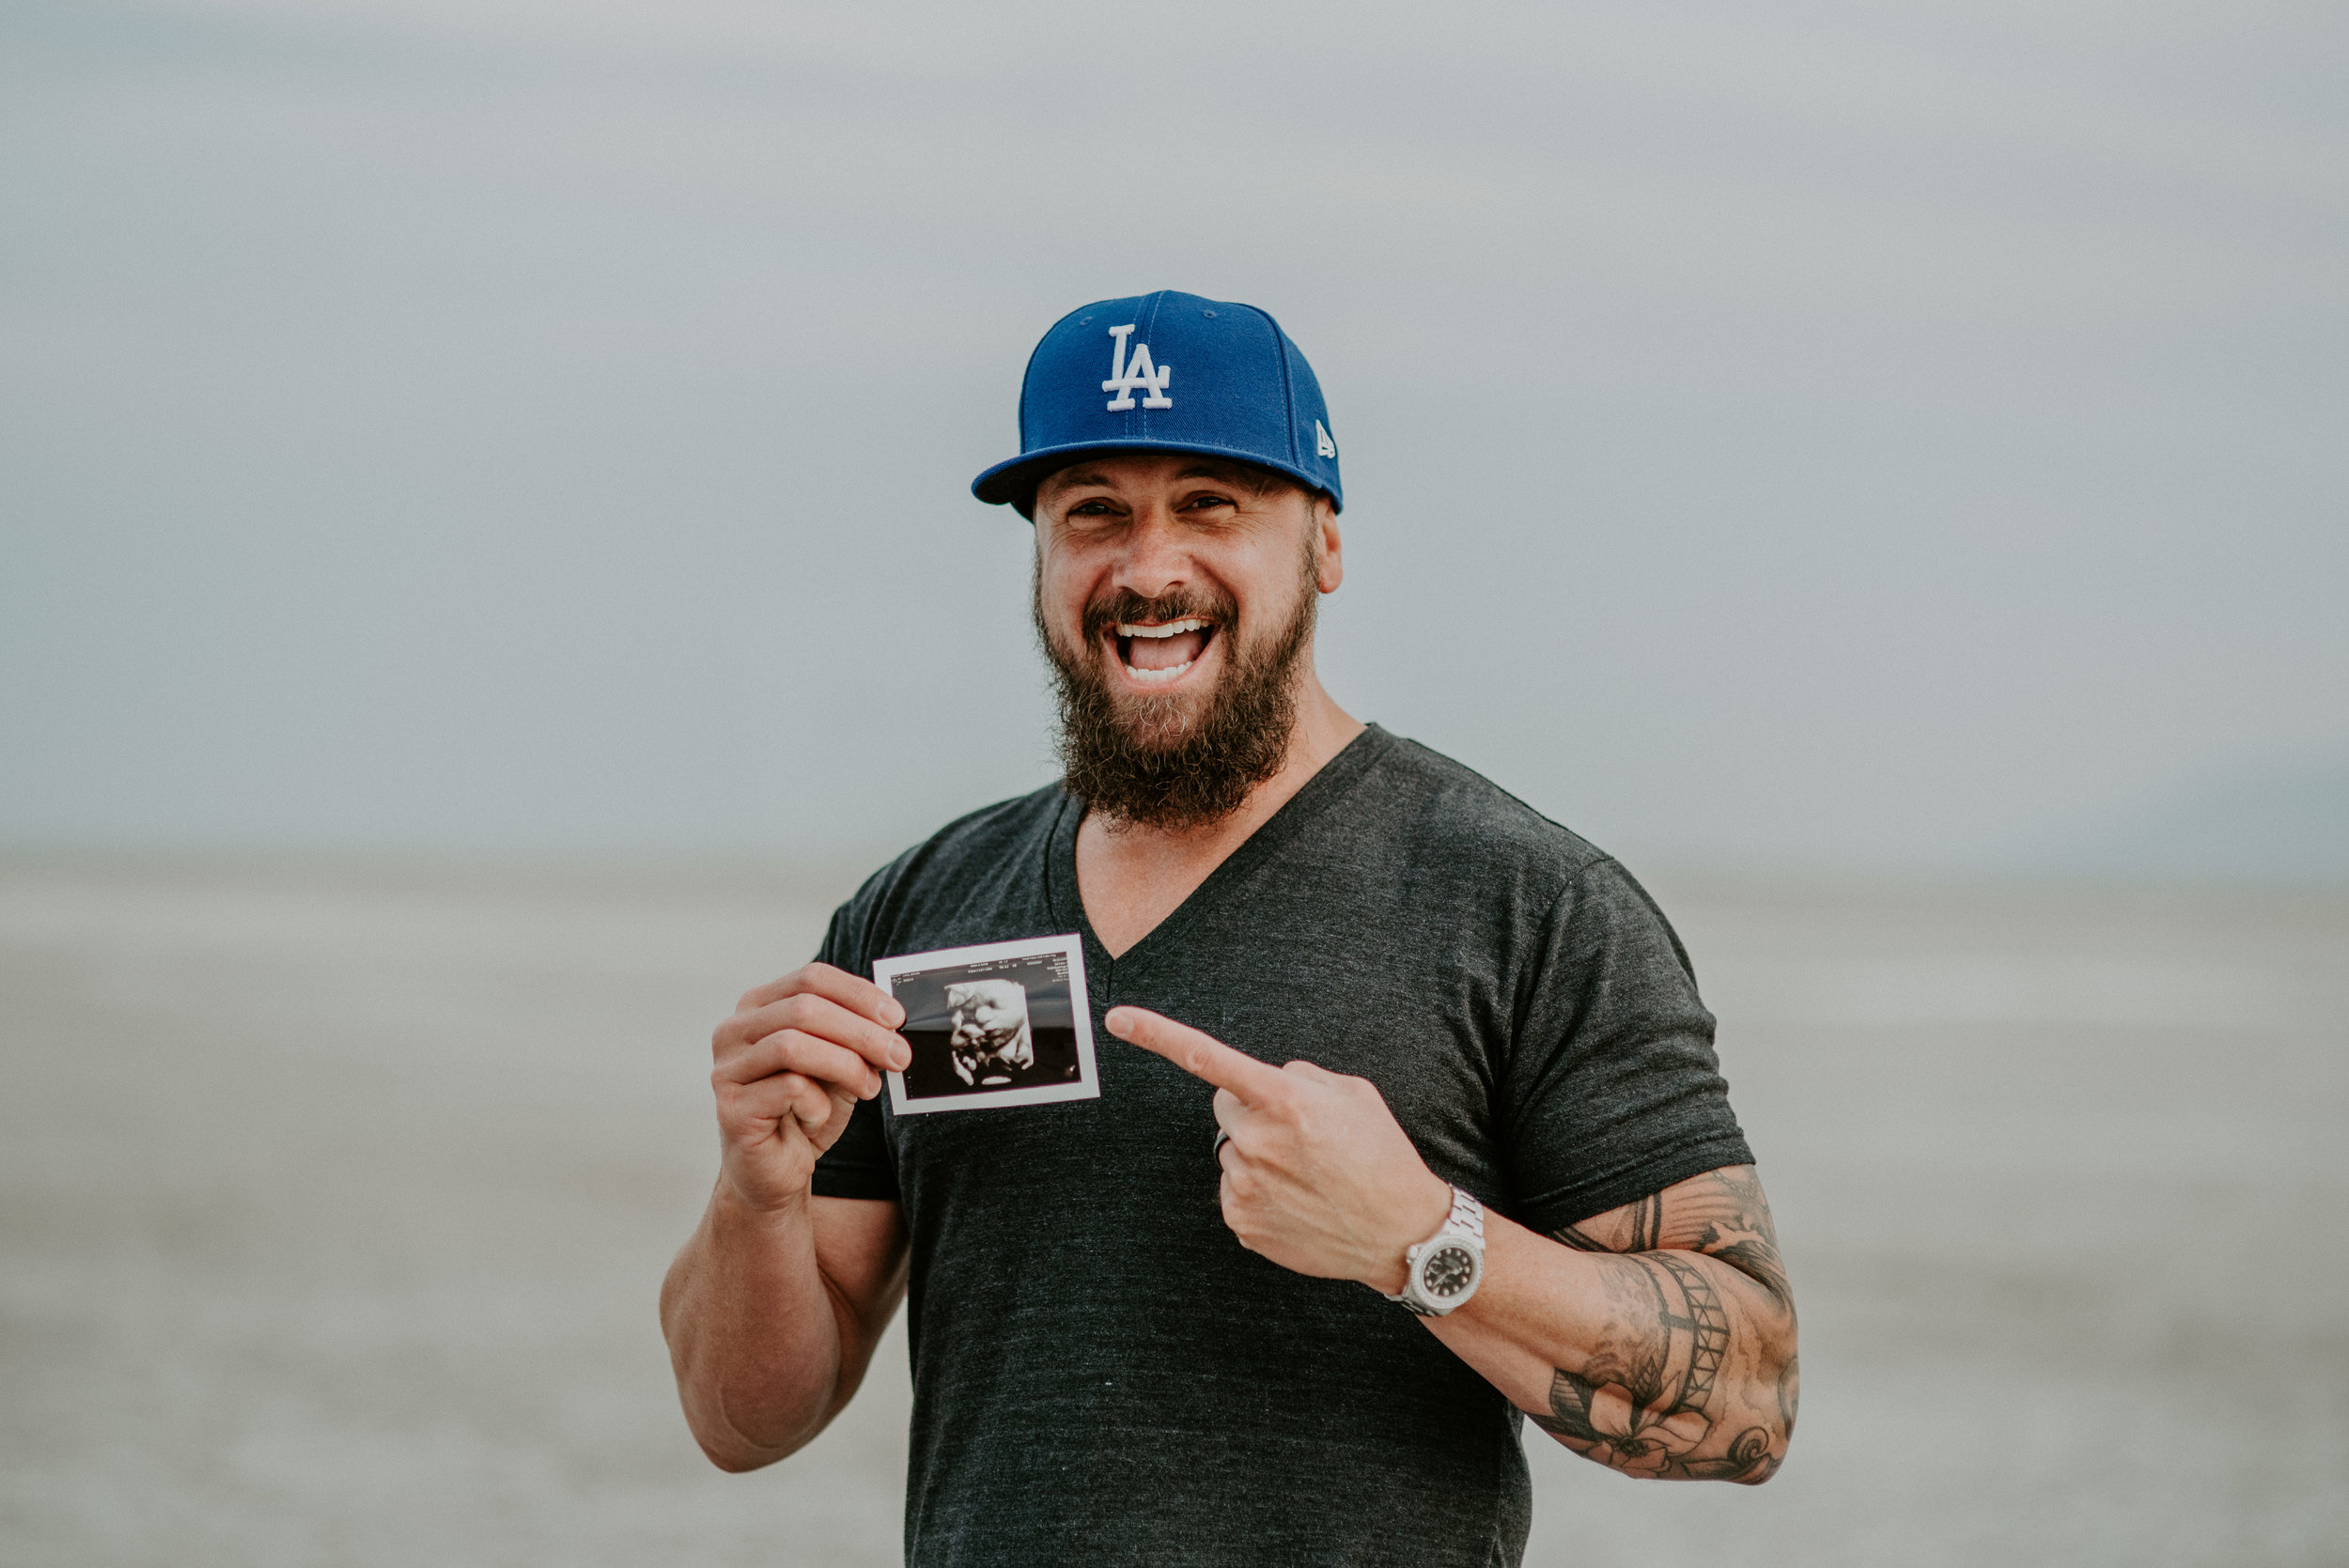 Fun Dad Maternity Shoot